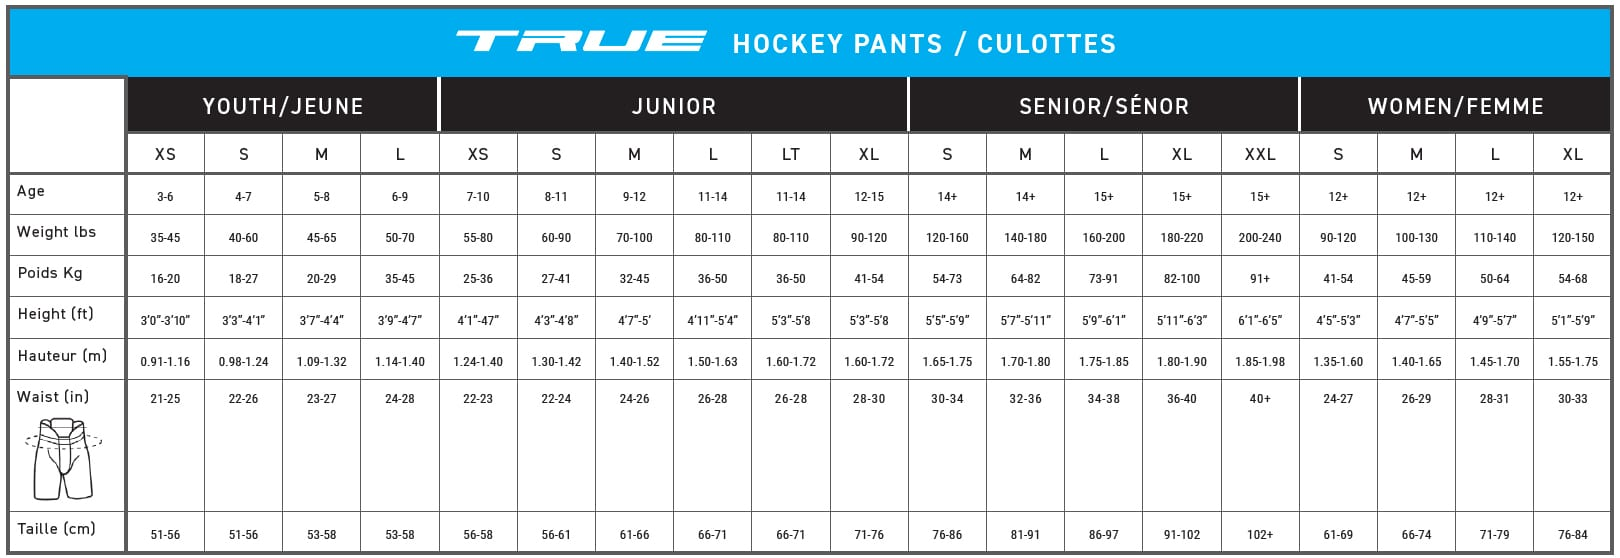 True Hockey Pant Sizing Guide